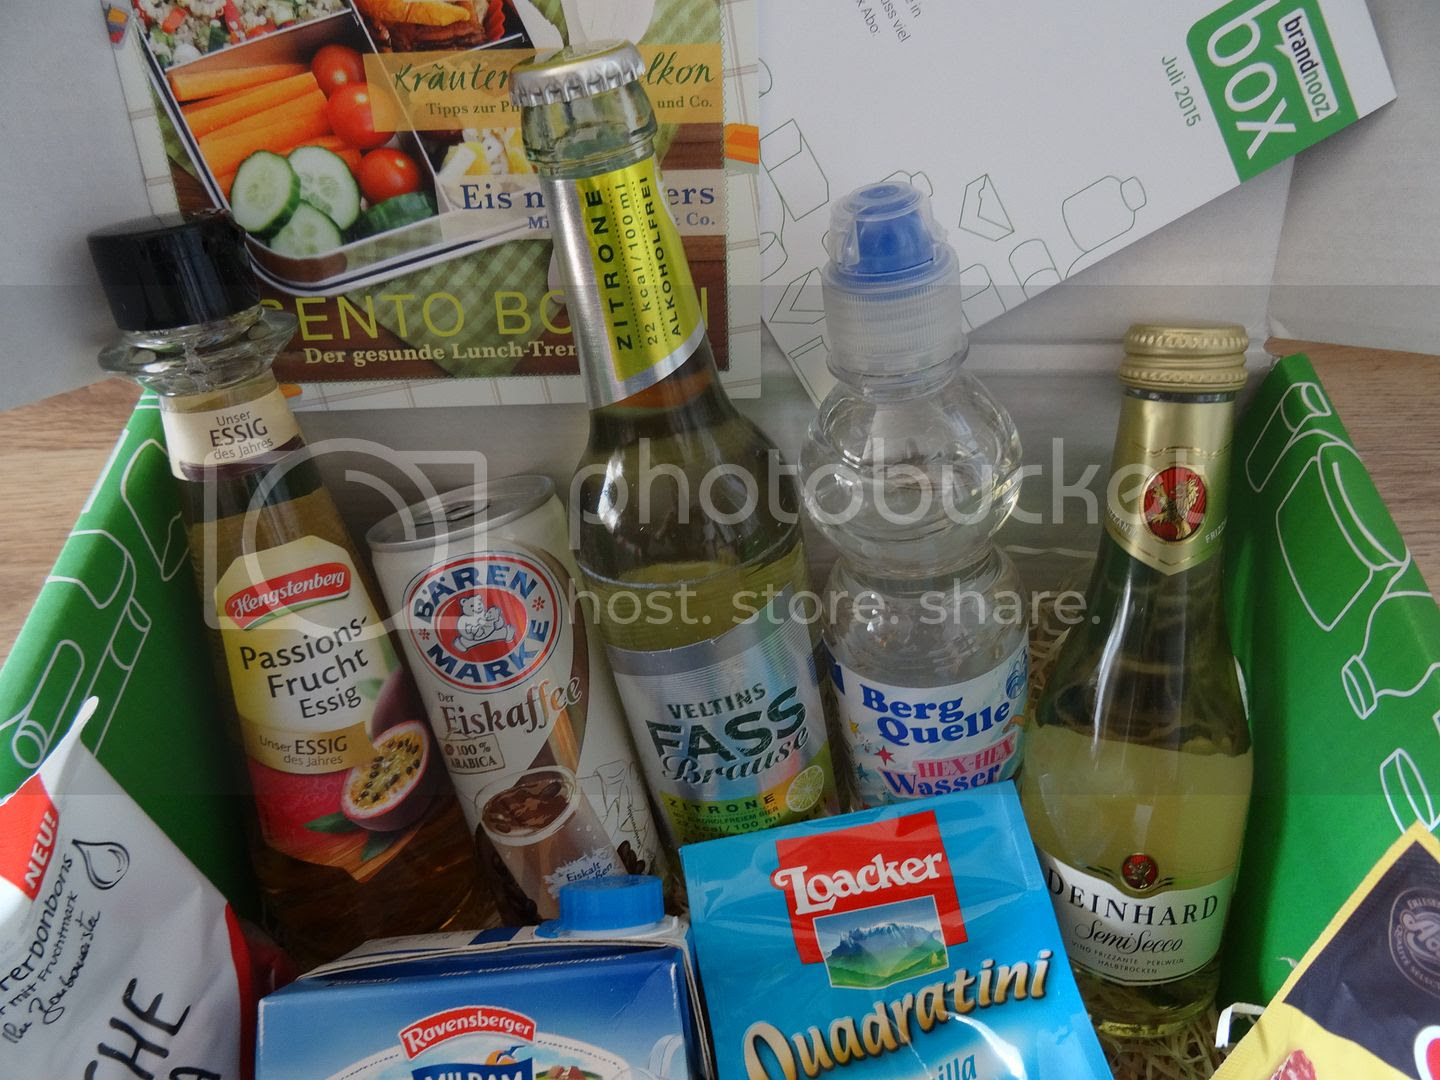 Brandnooz Box Juli 2015 photo DSC02415_zps7en6qdae.jpg